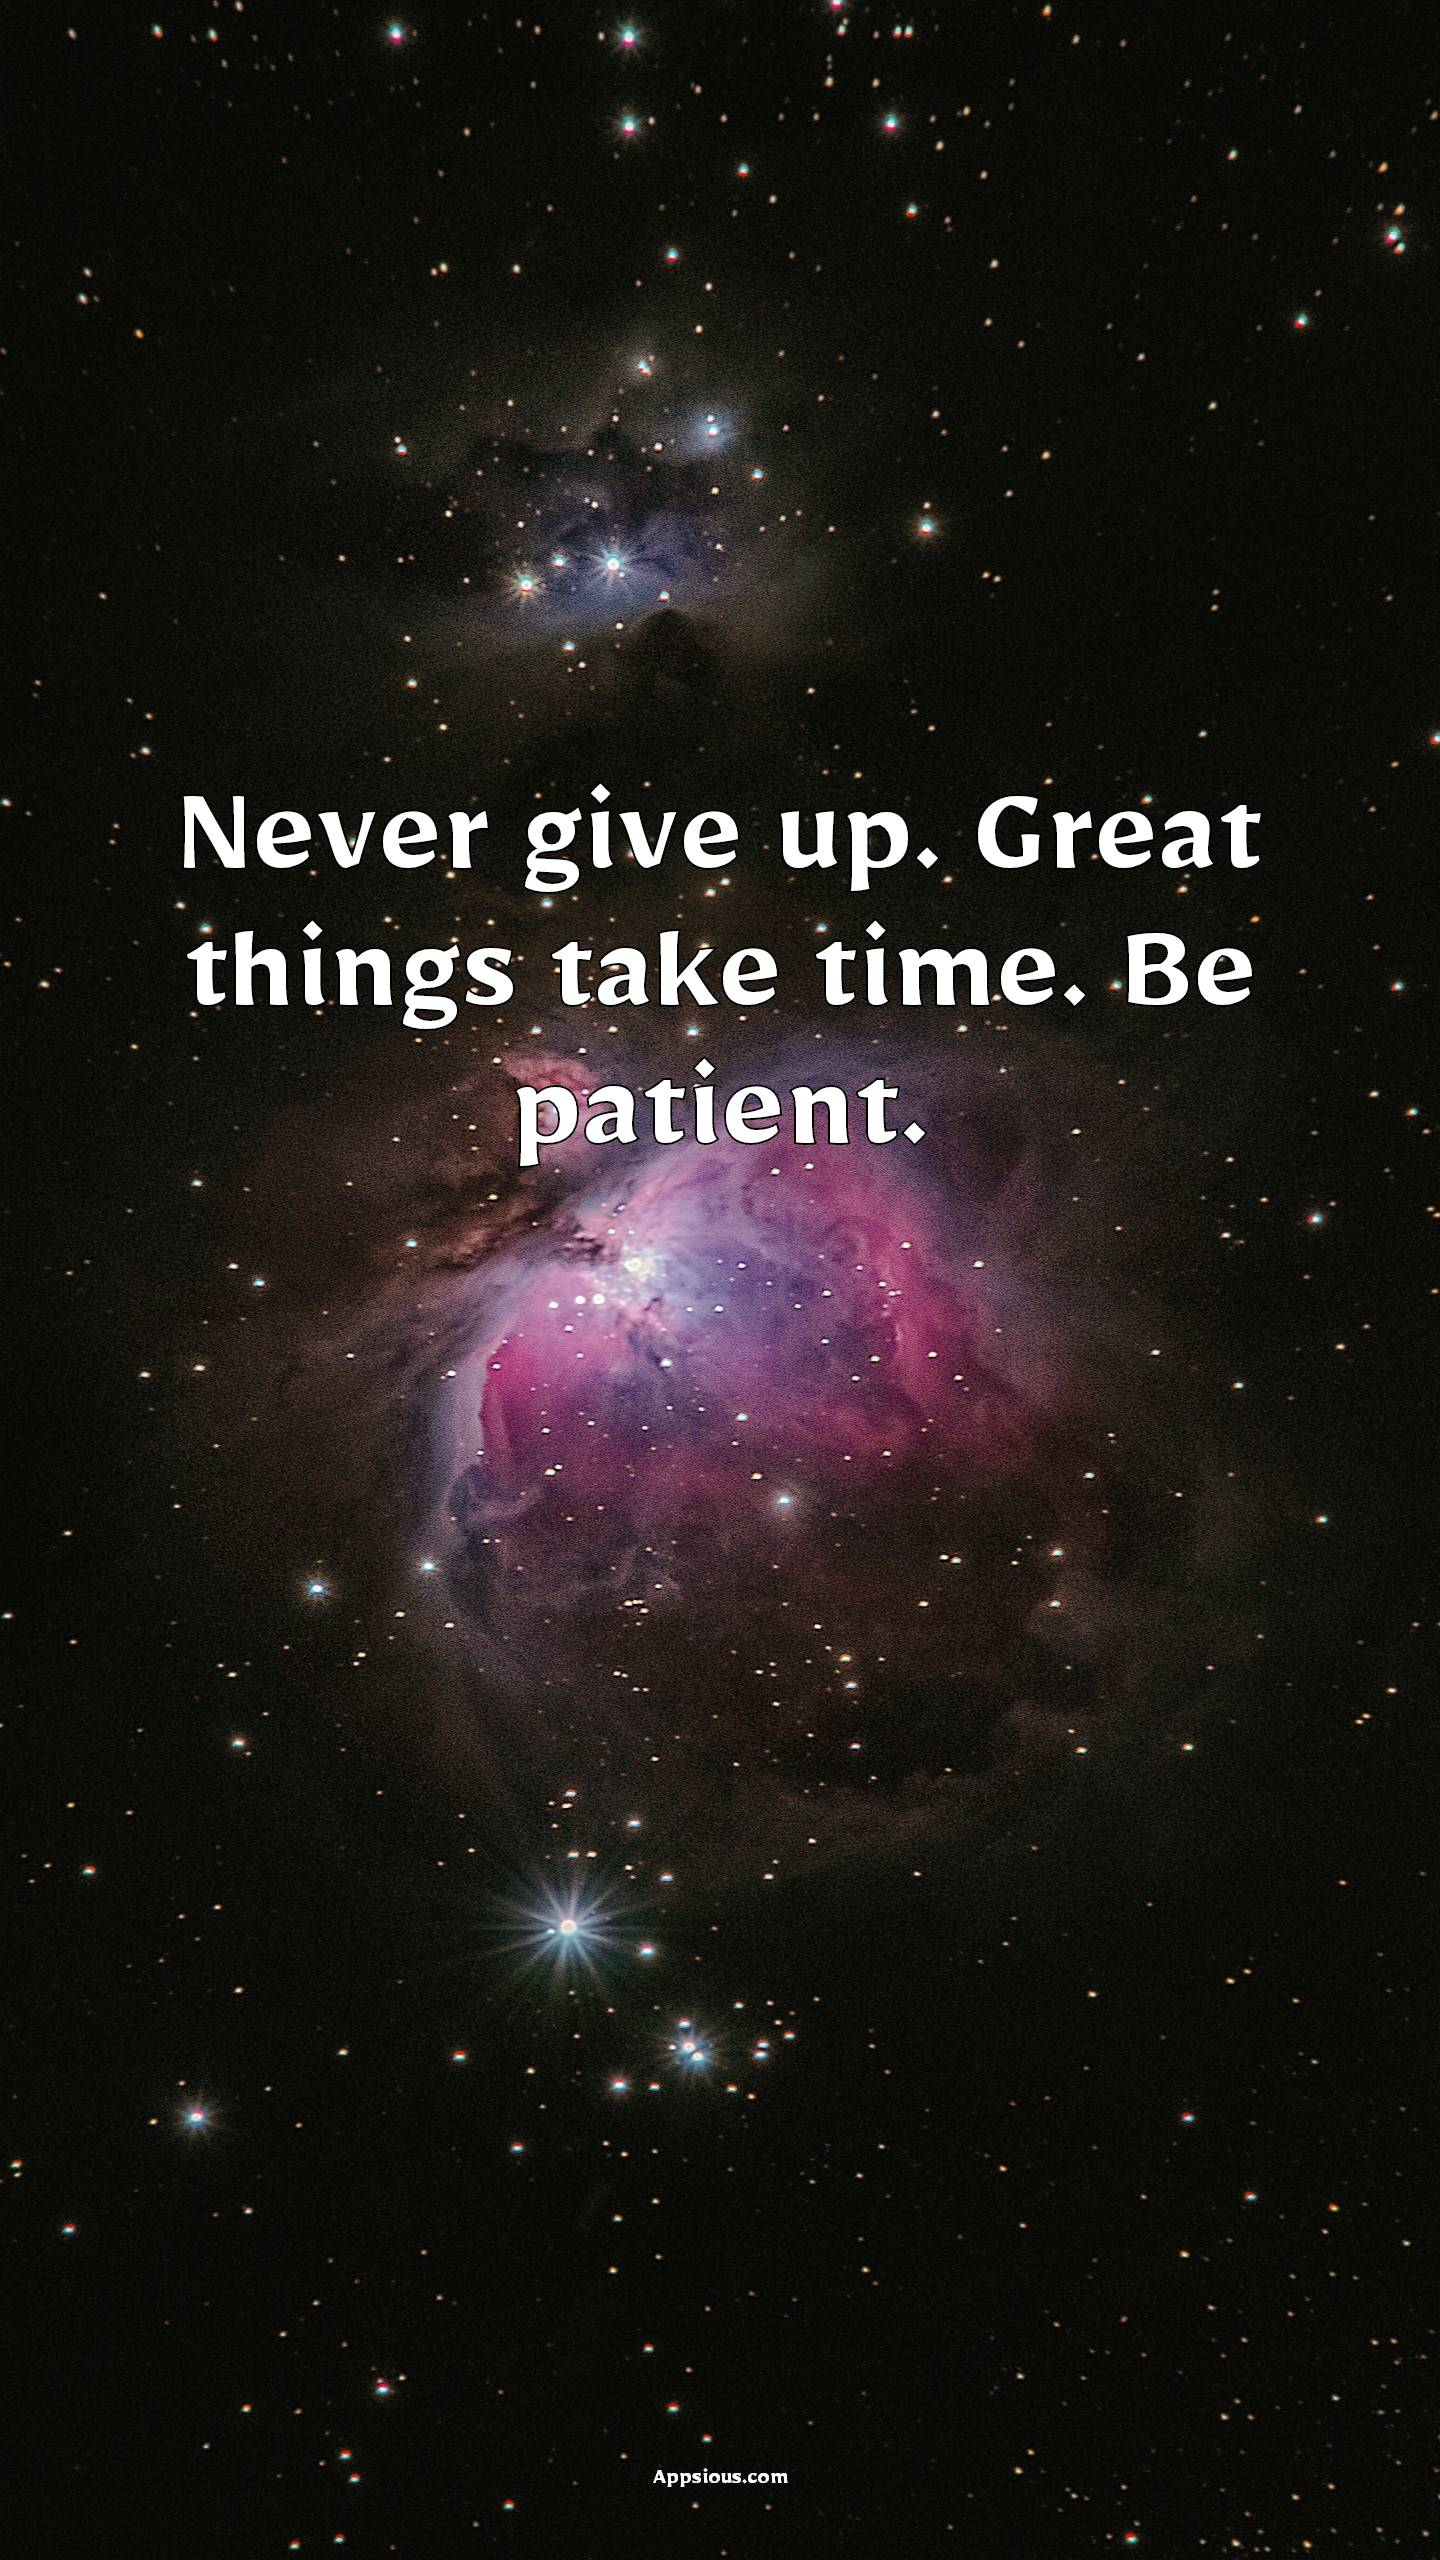 Never give up. Great things take time. Be patient.